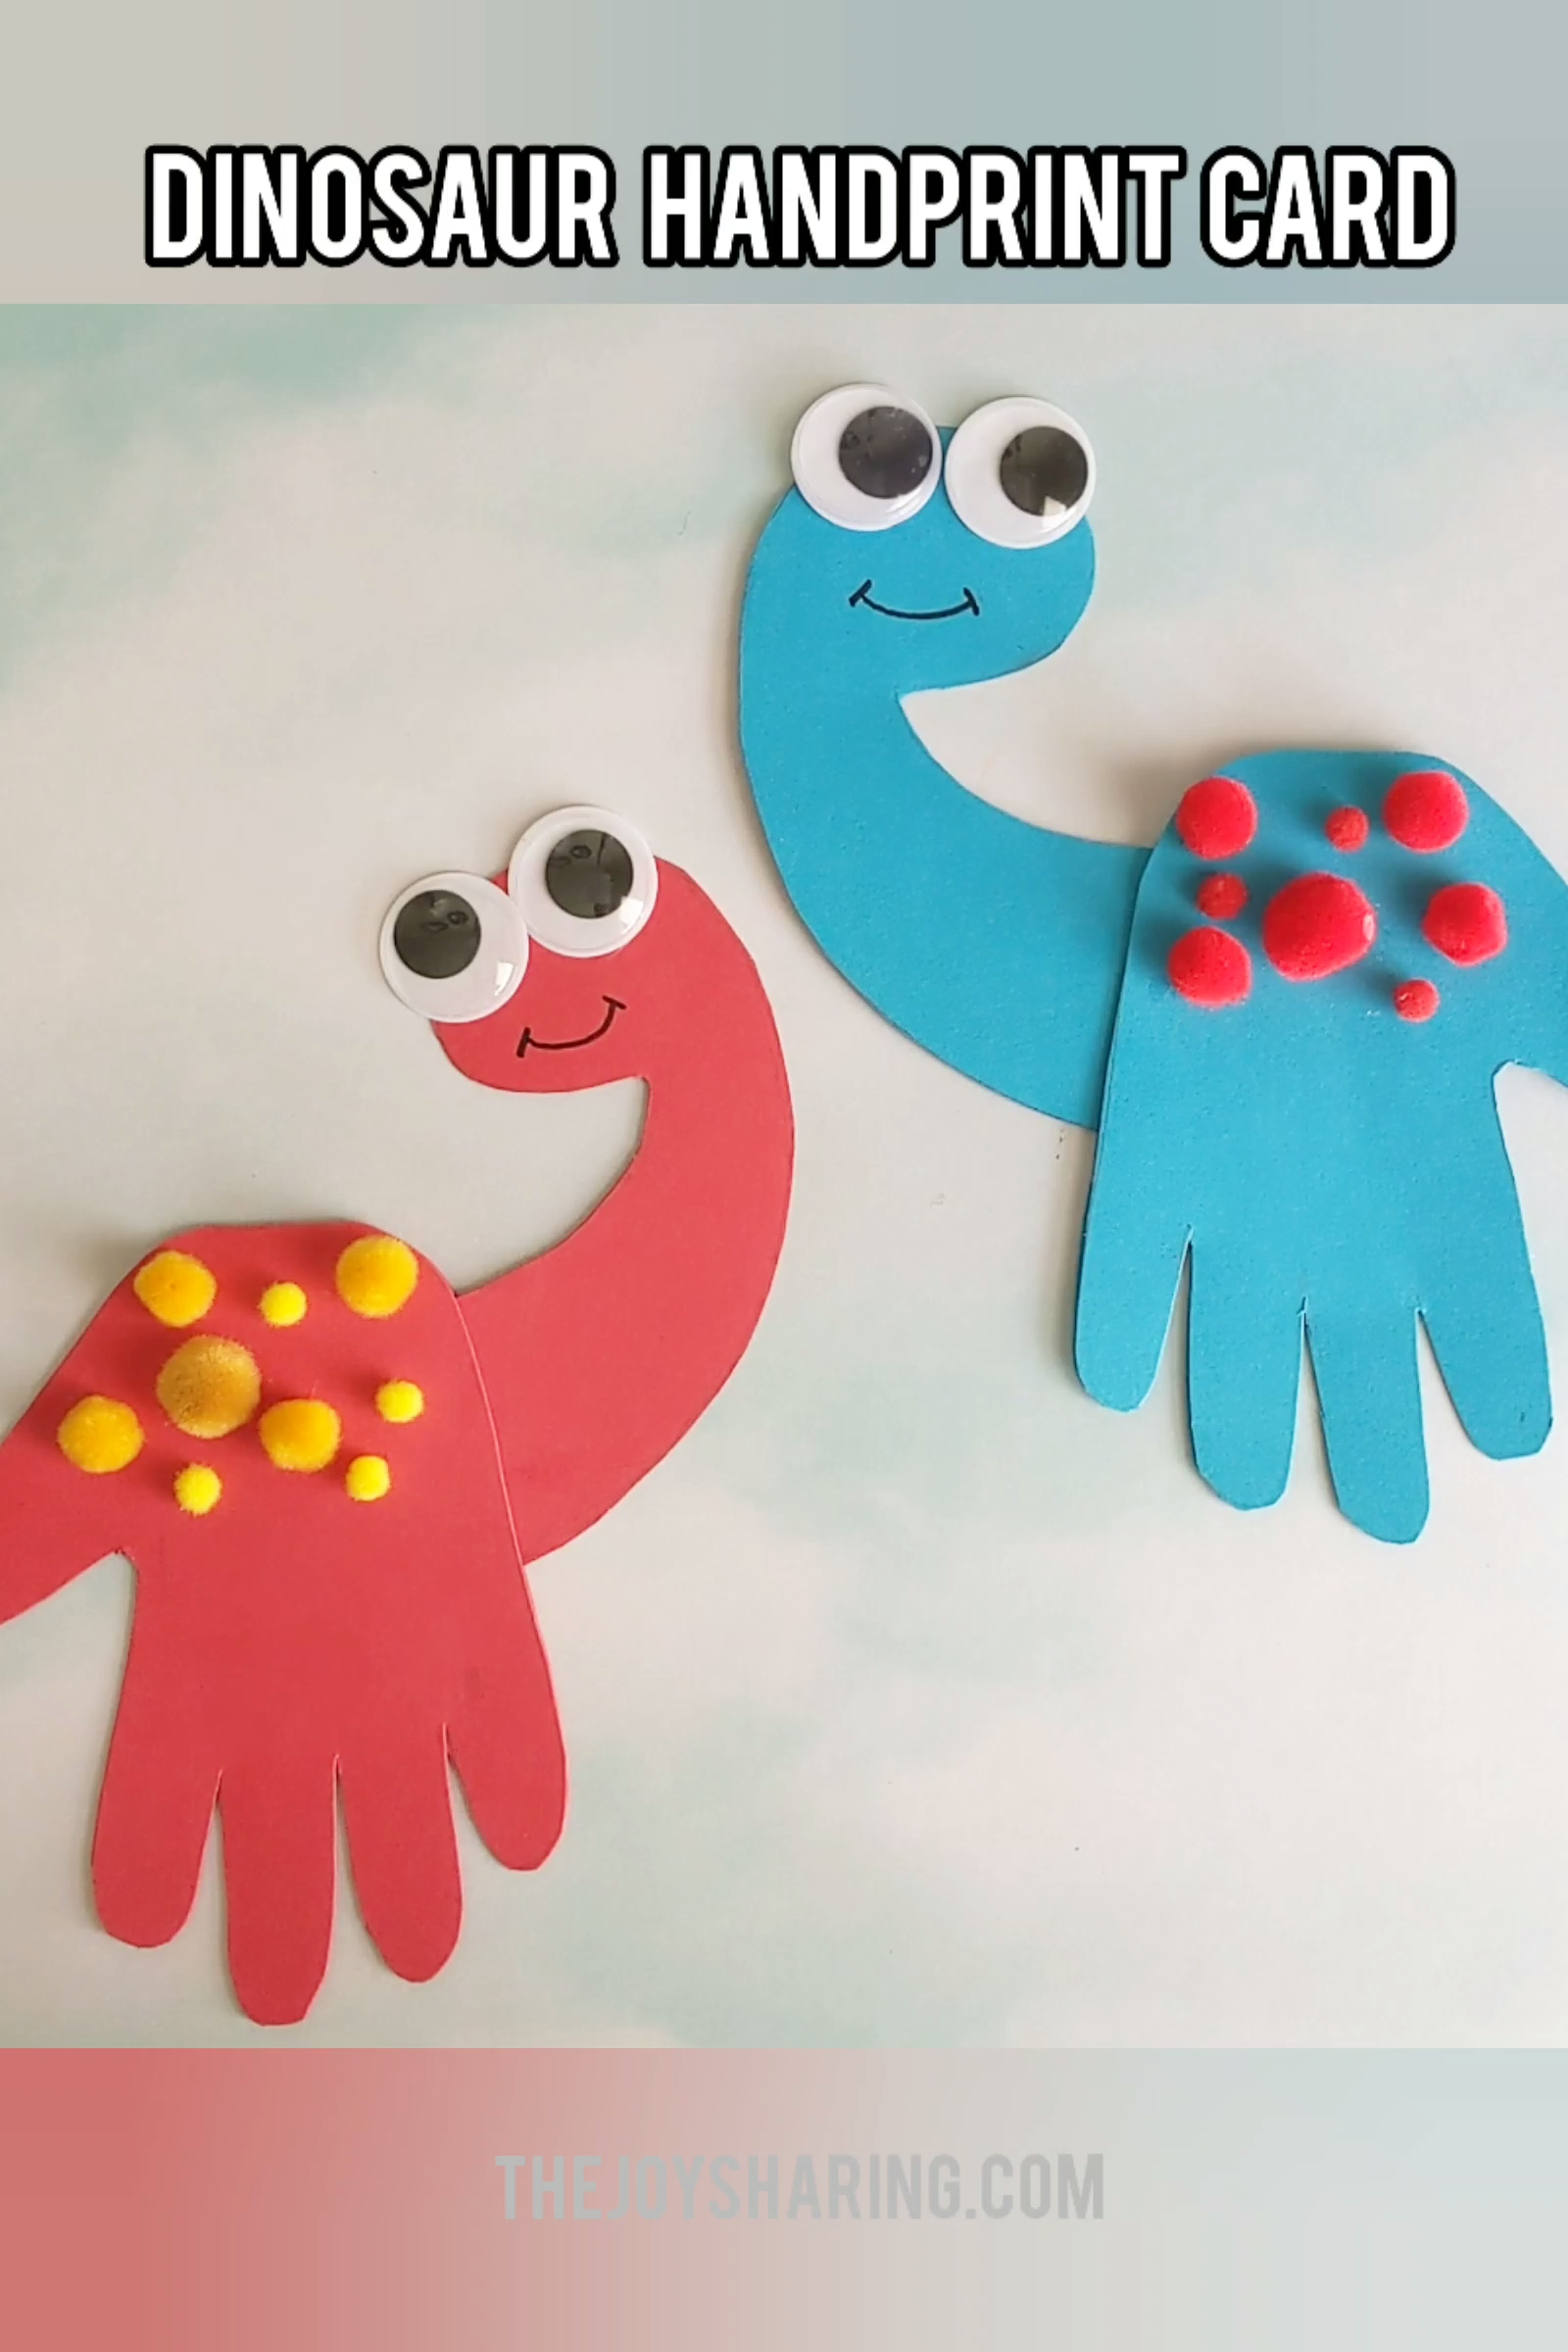 Cutehandprint father's day card that kids will enjoy making, Dads will love getting and teachers will find easy to